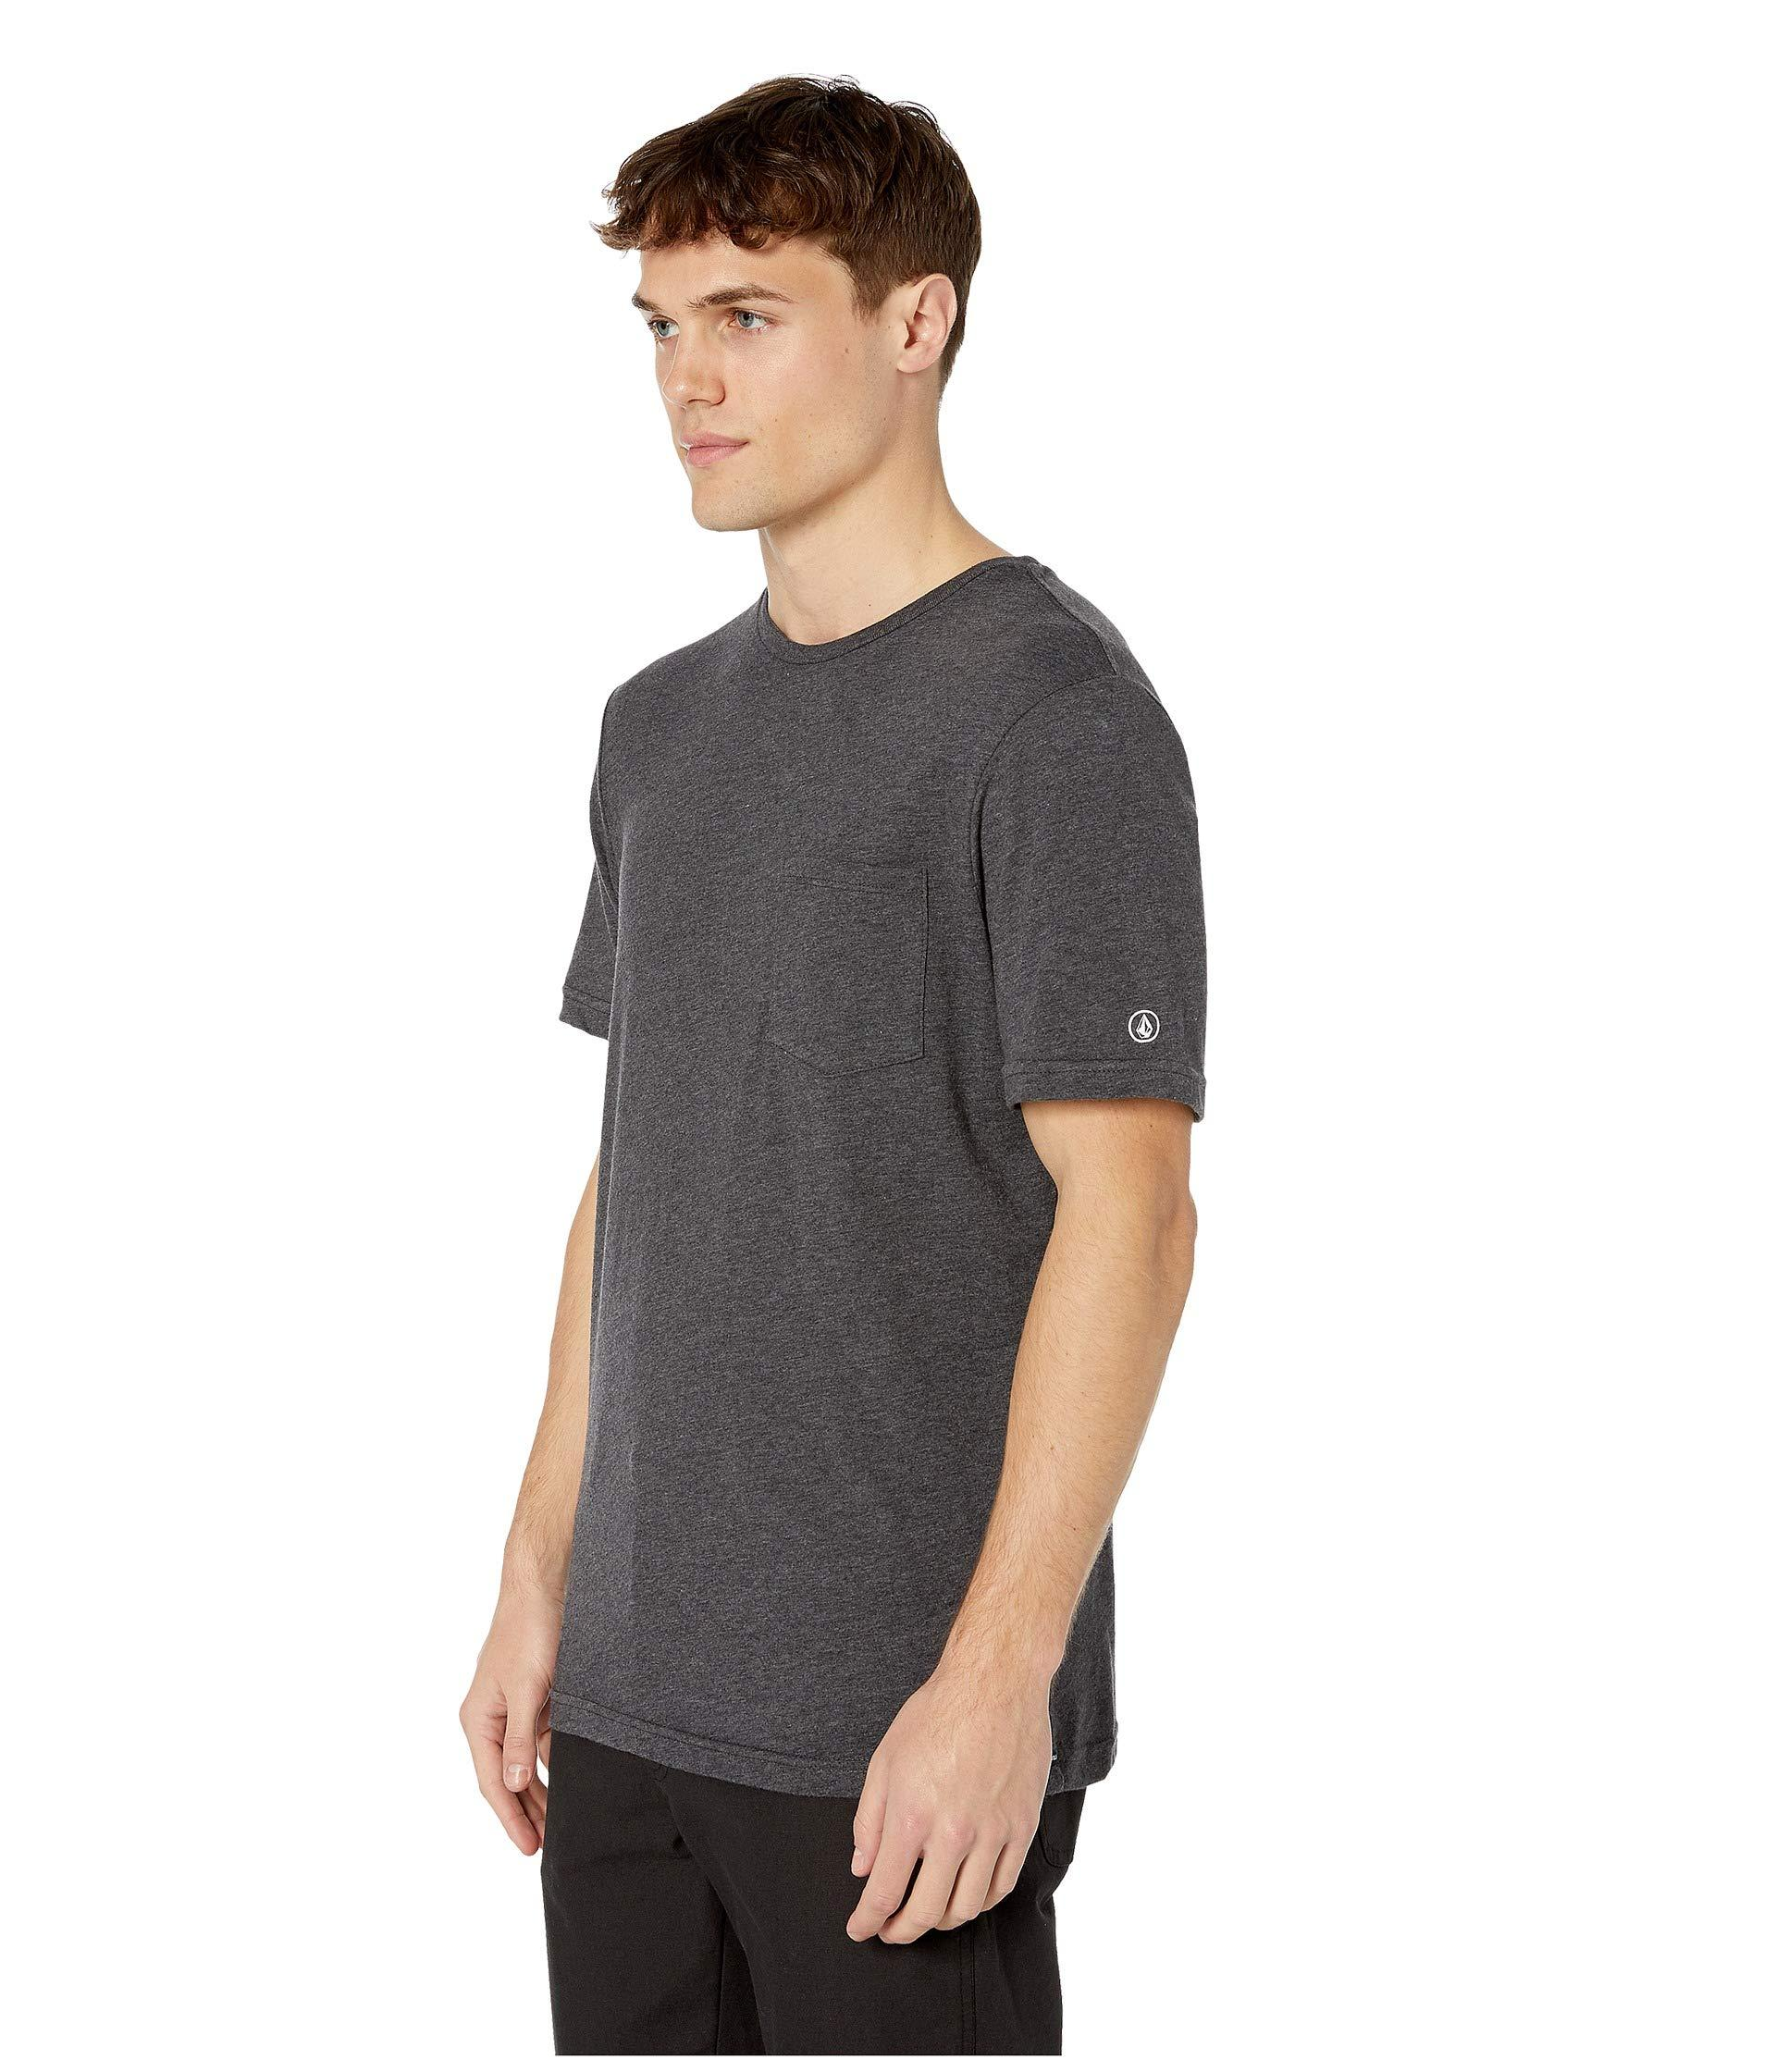 739a0c37b81 Lyst - Volcom Heather Short Sleeve Pocket Tee (black Combo) Men's Clothing  in Black for Men